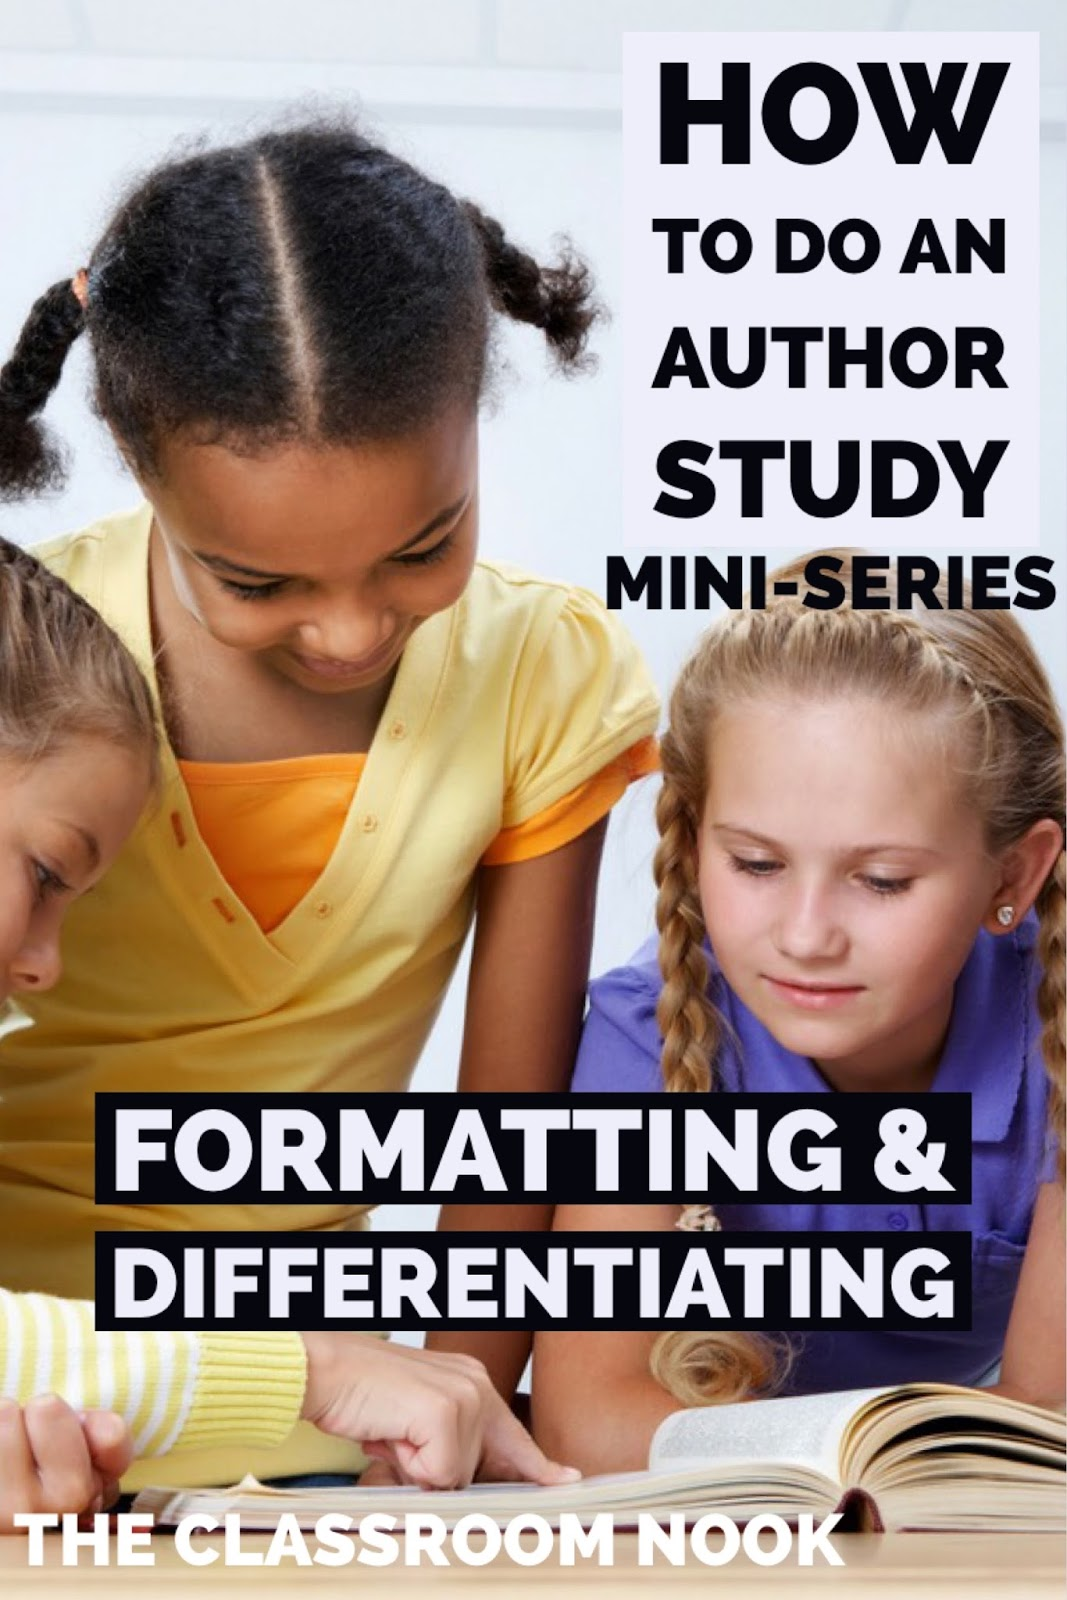 author study This is just a very simple idea i wanted to share about making author posters for your classroom during the book study recently, some of us were talking about author studies author studies can be very, very simple, especially in pre-k i think some teachers feel intimidated when they think of doing an author study because.